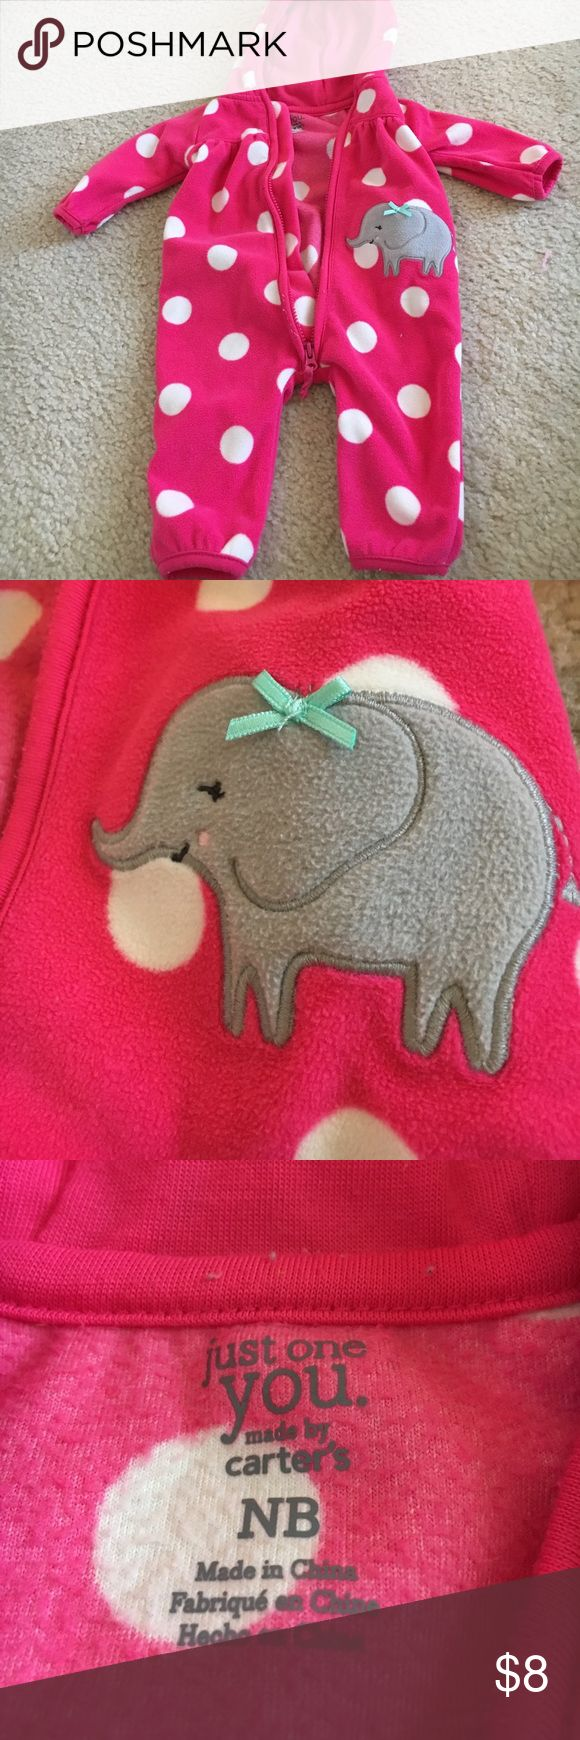 Pink polka dot newborn one piece Pink polka dot elephant one piece. Just One You by Carters. Newborn. Really soft and warm. Zips up. Has hood. Only worn once! Carter's One Pieces Bodysuits